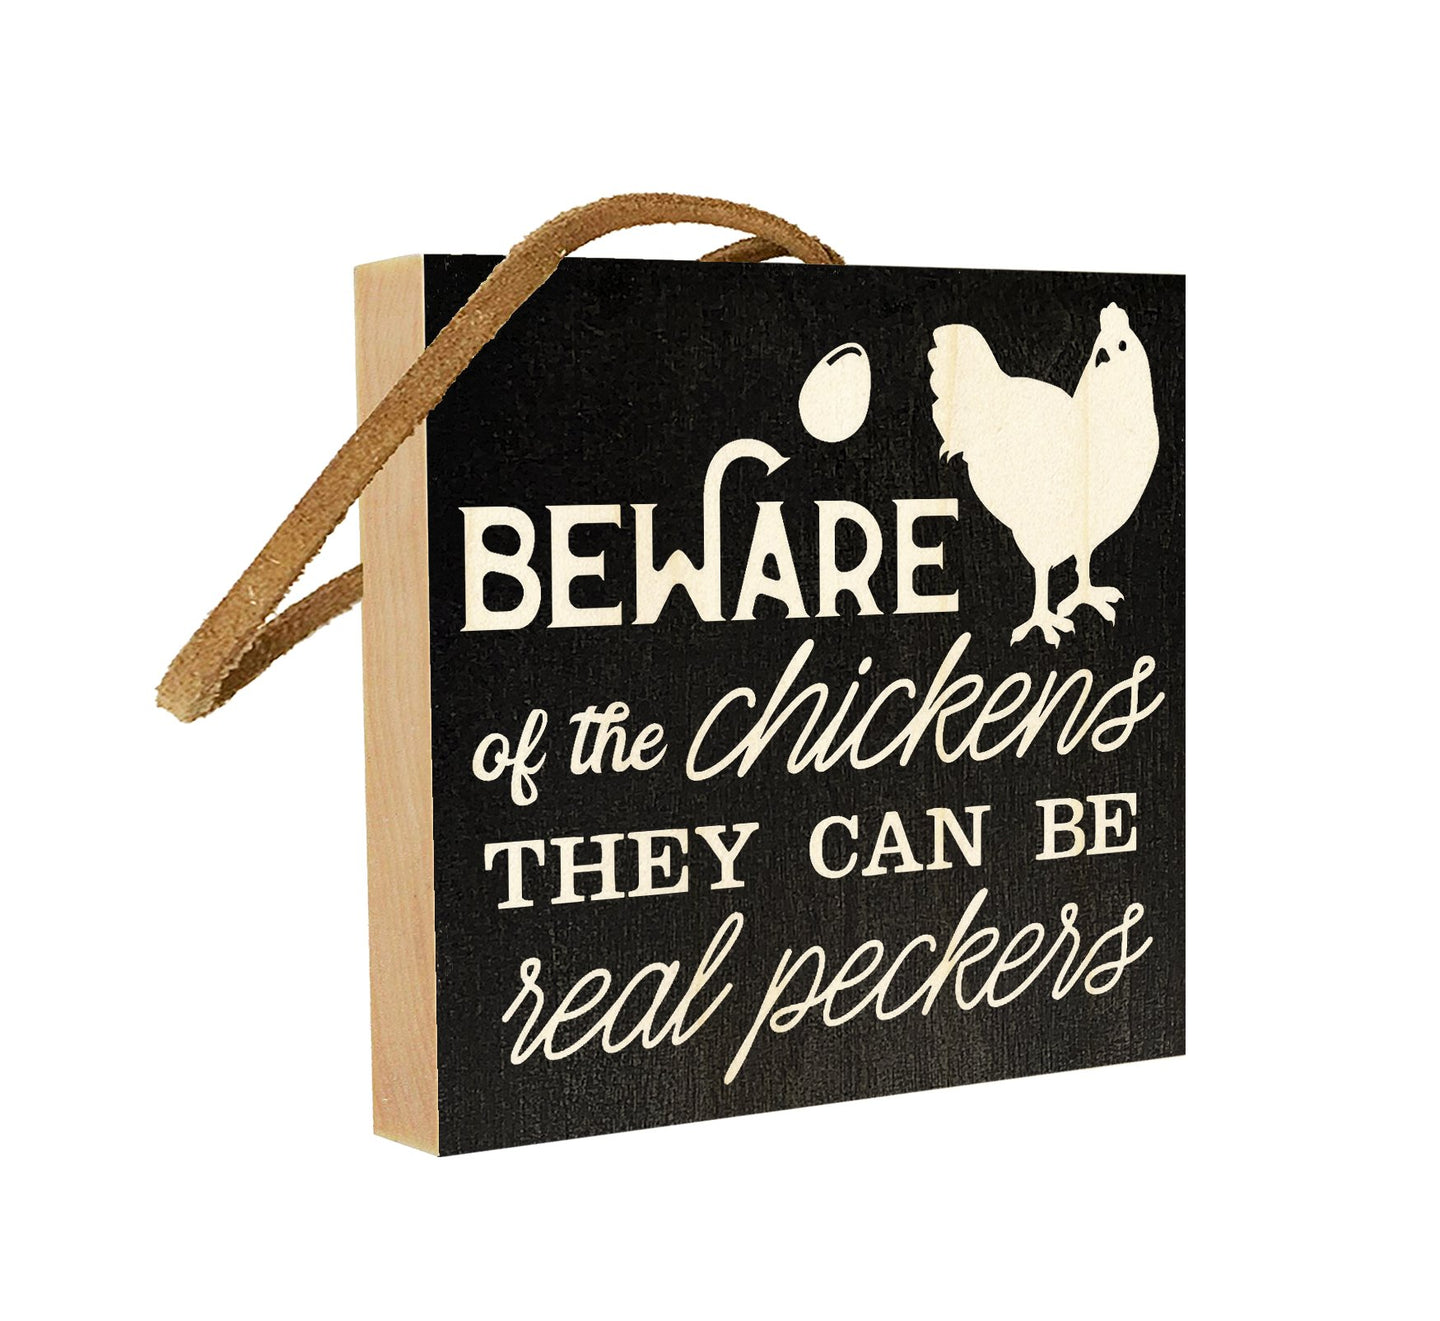 Beware of the Chickens. They Can Be Real Peckers.